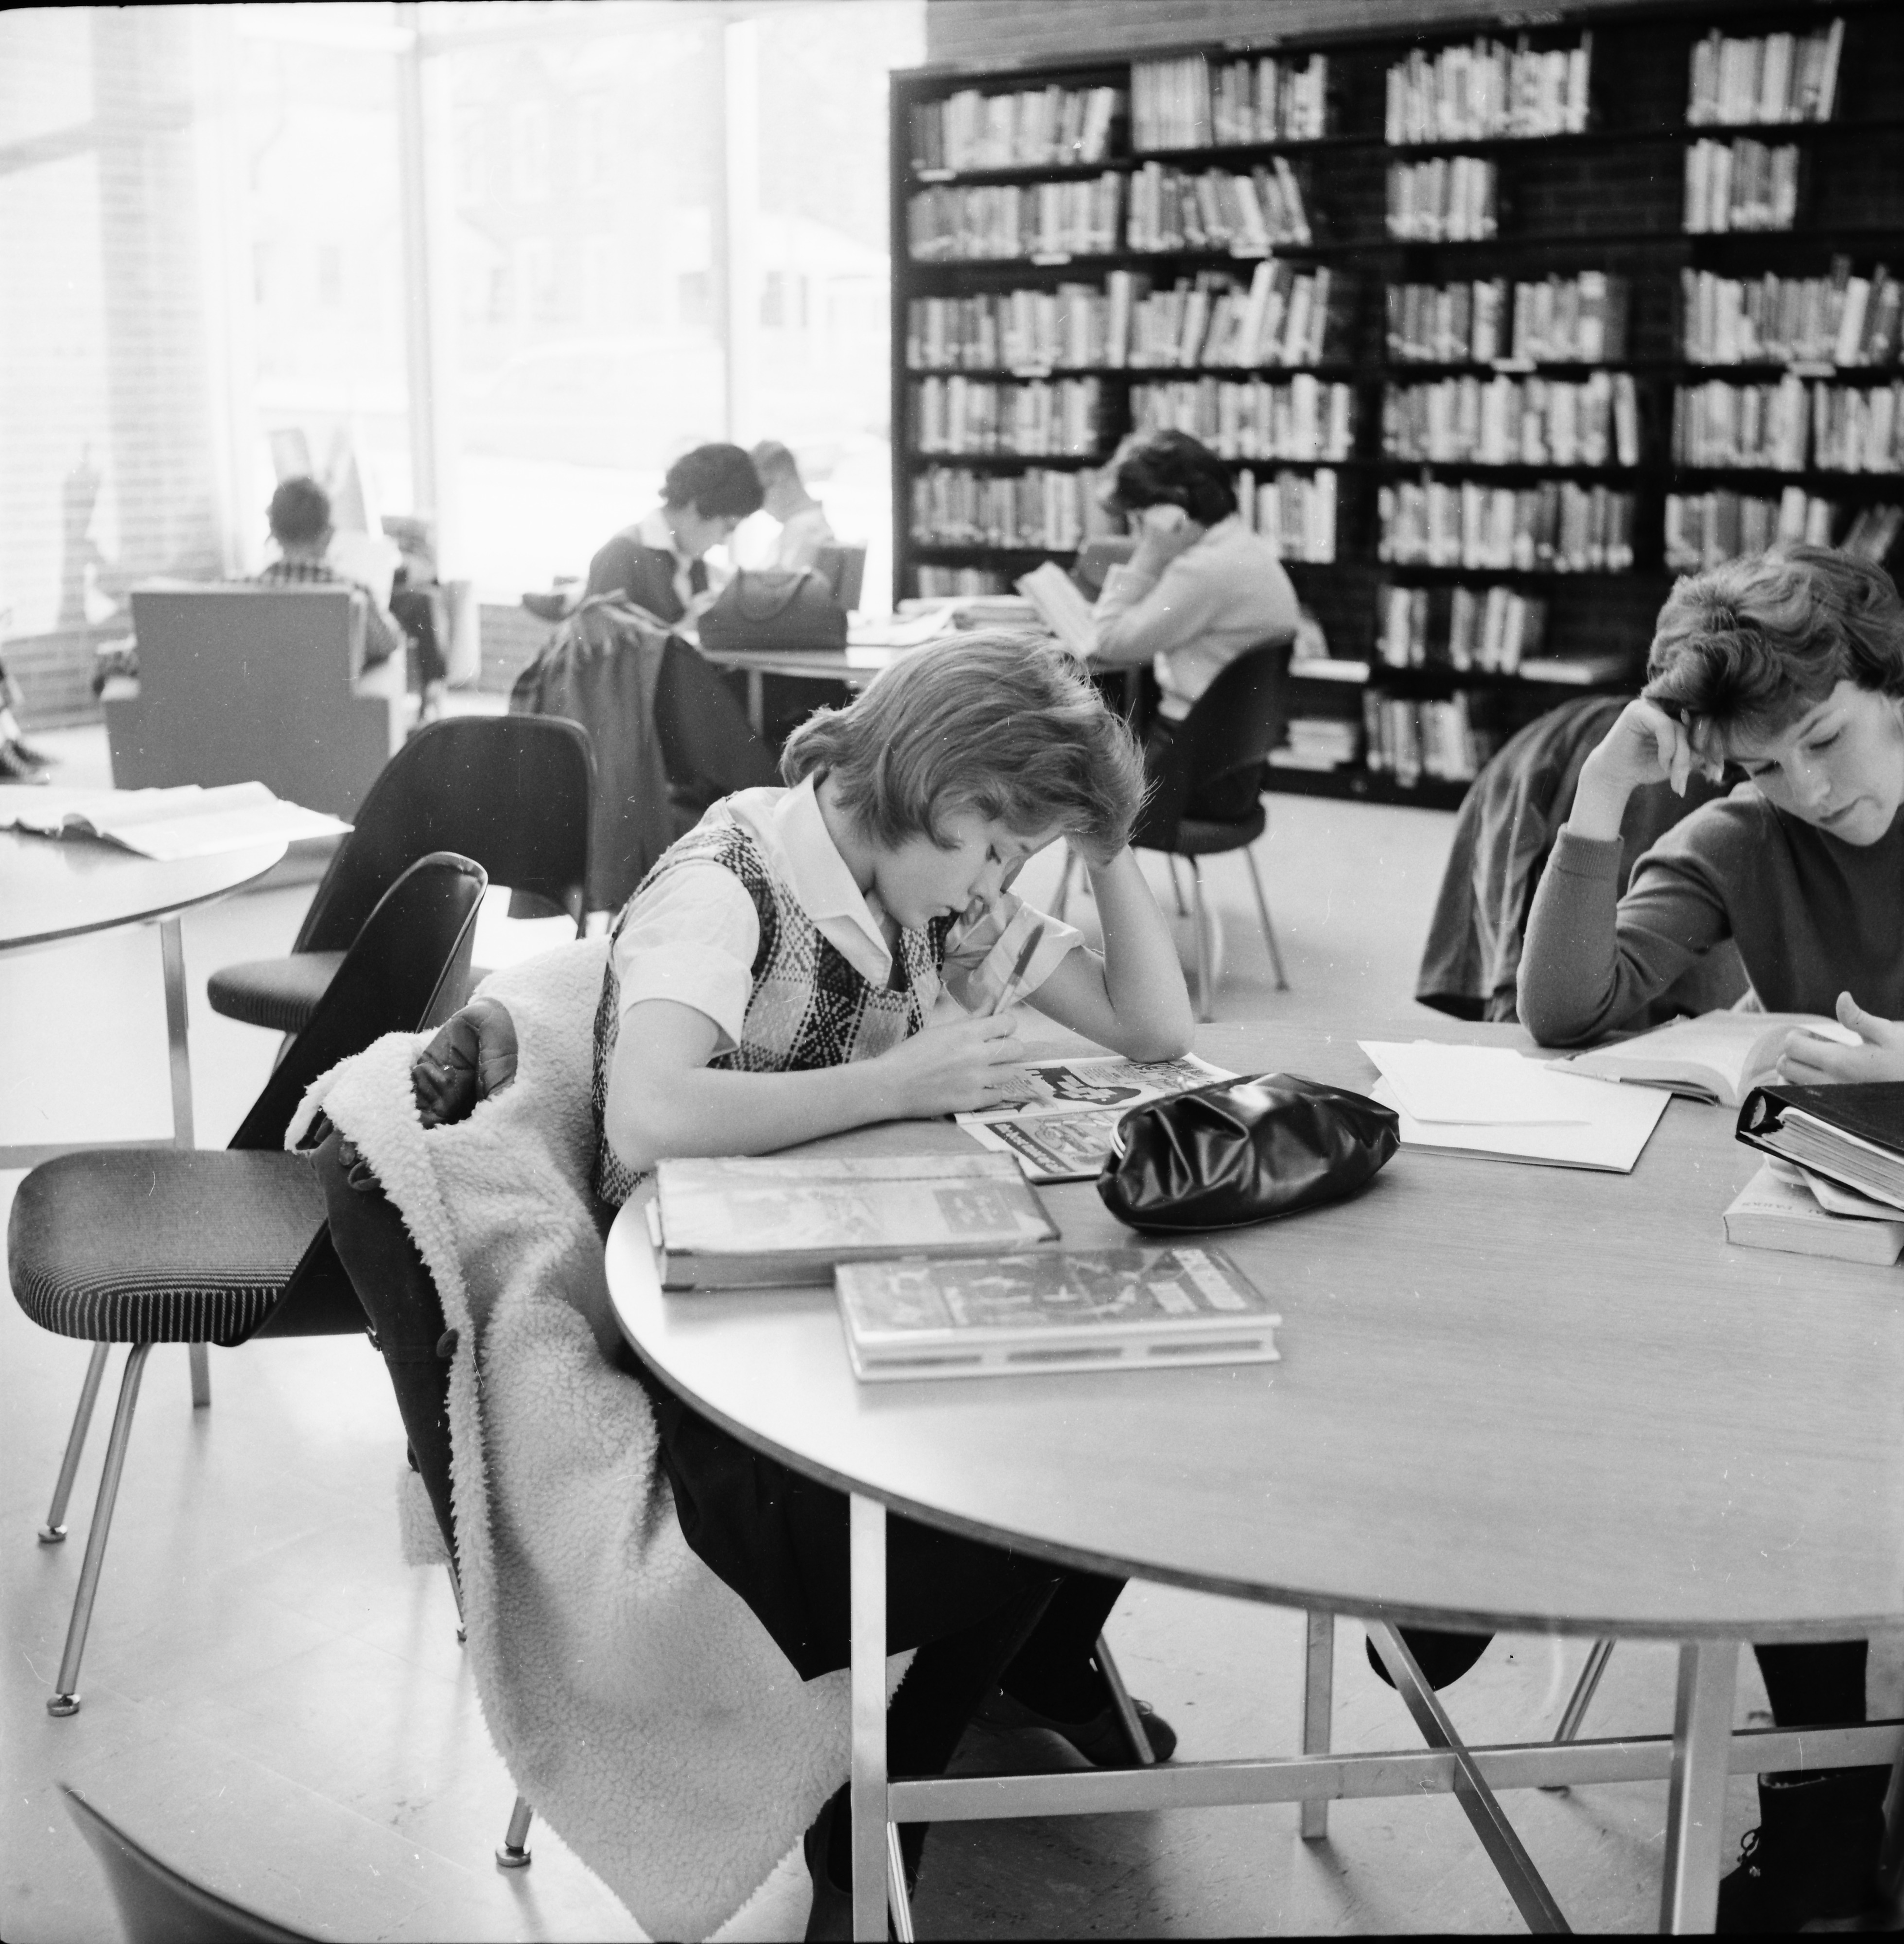 Hard At Homework During the Holidays at the Ann Arbor Public Library, December 1961 image